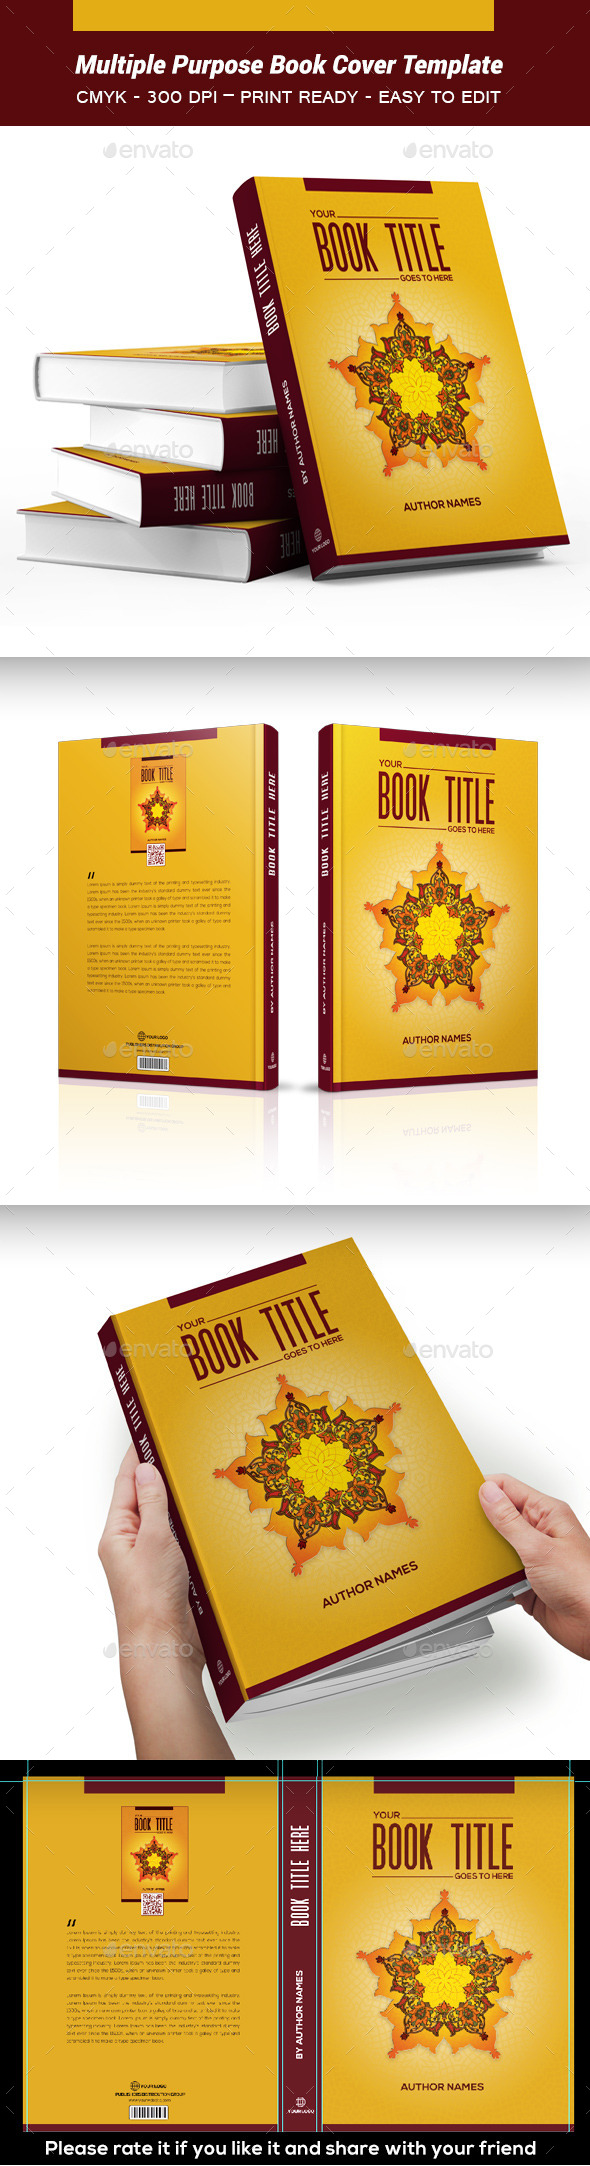 Multiple Purpose Book Cover Template 03 - Print Templates